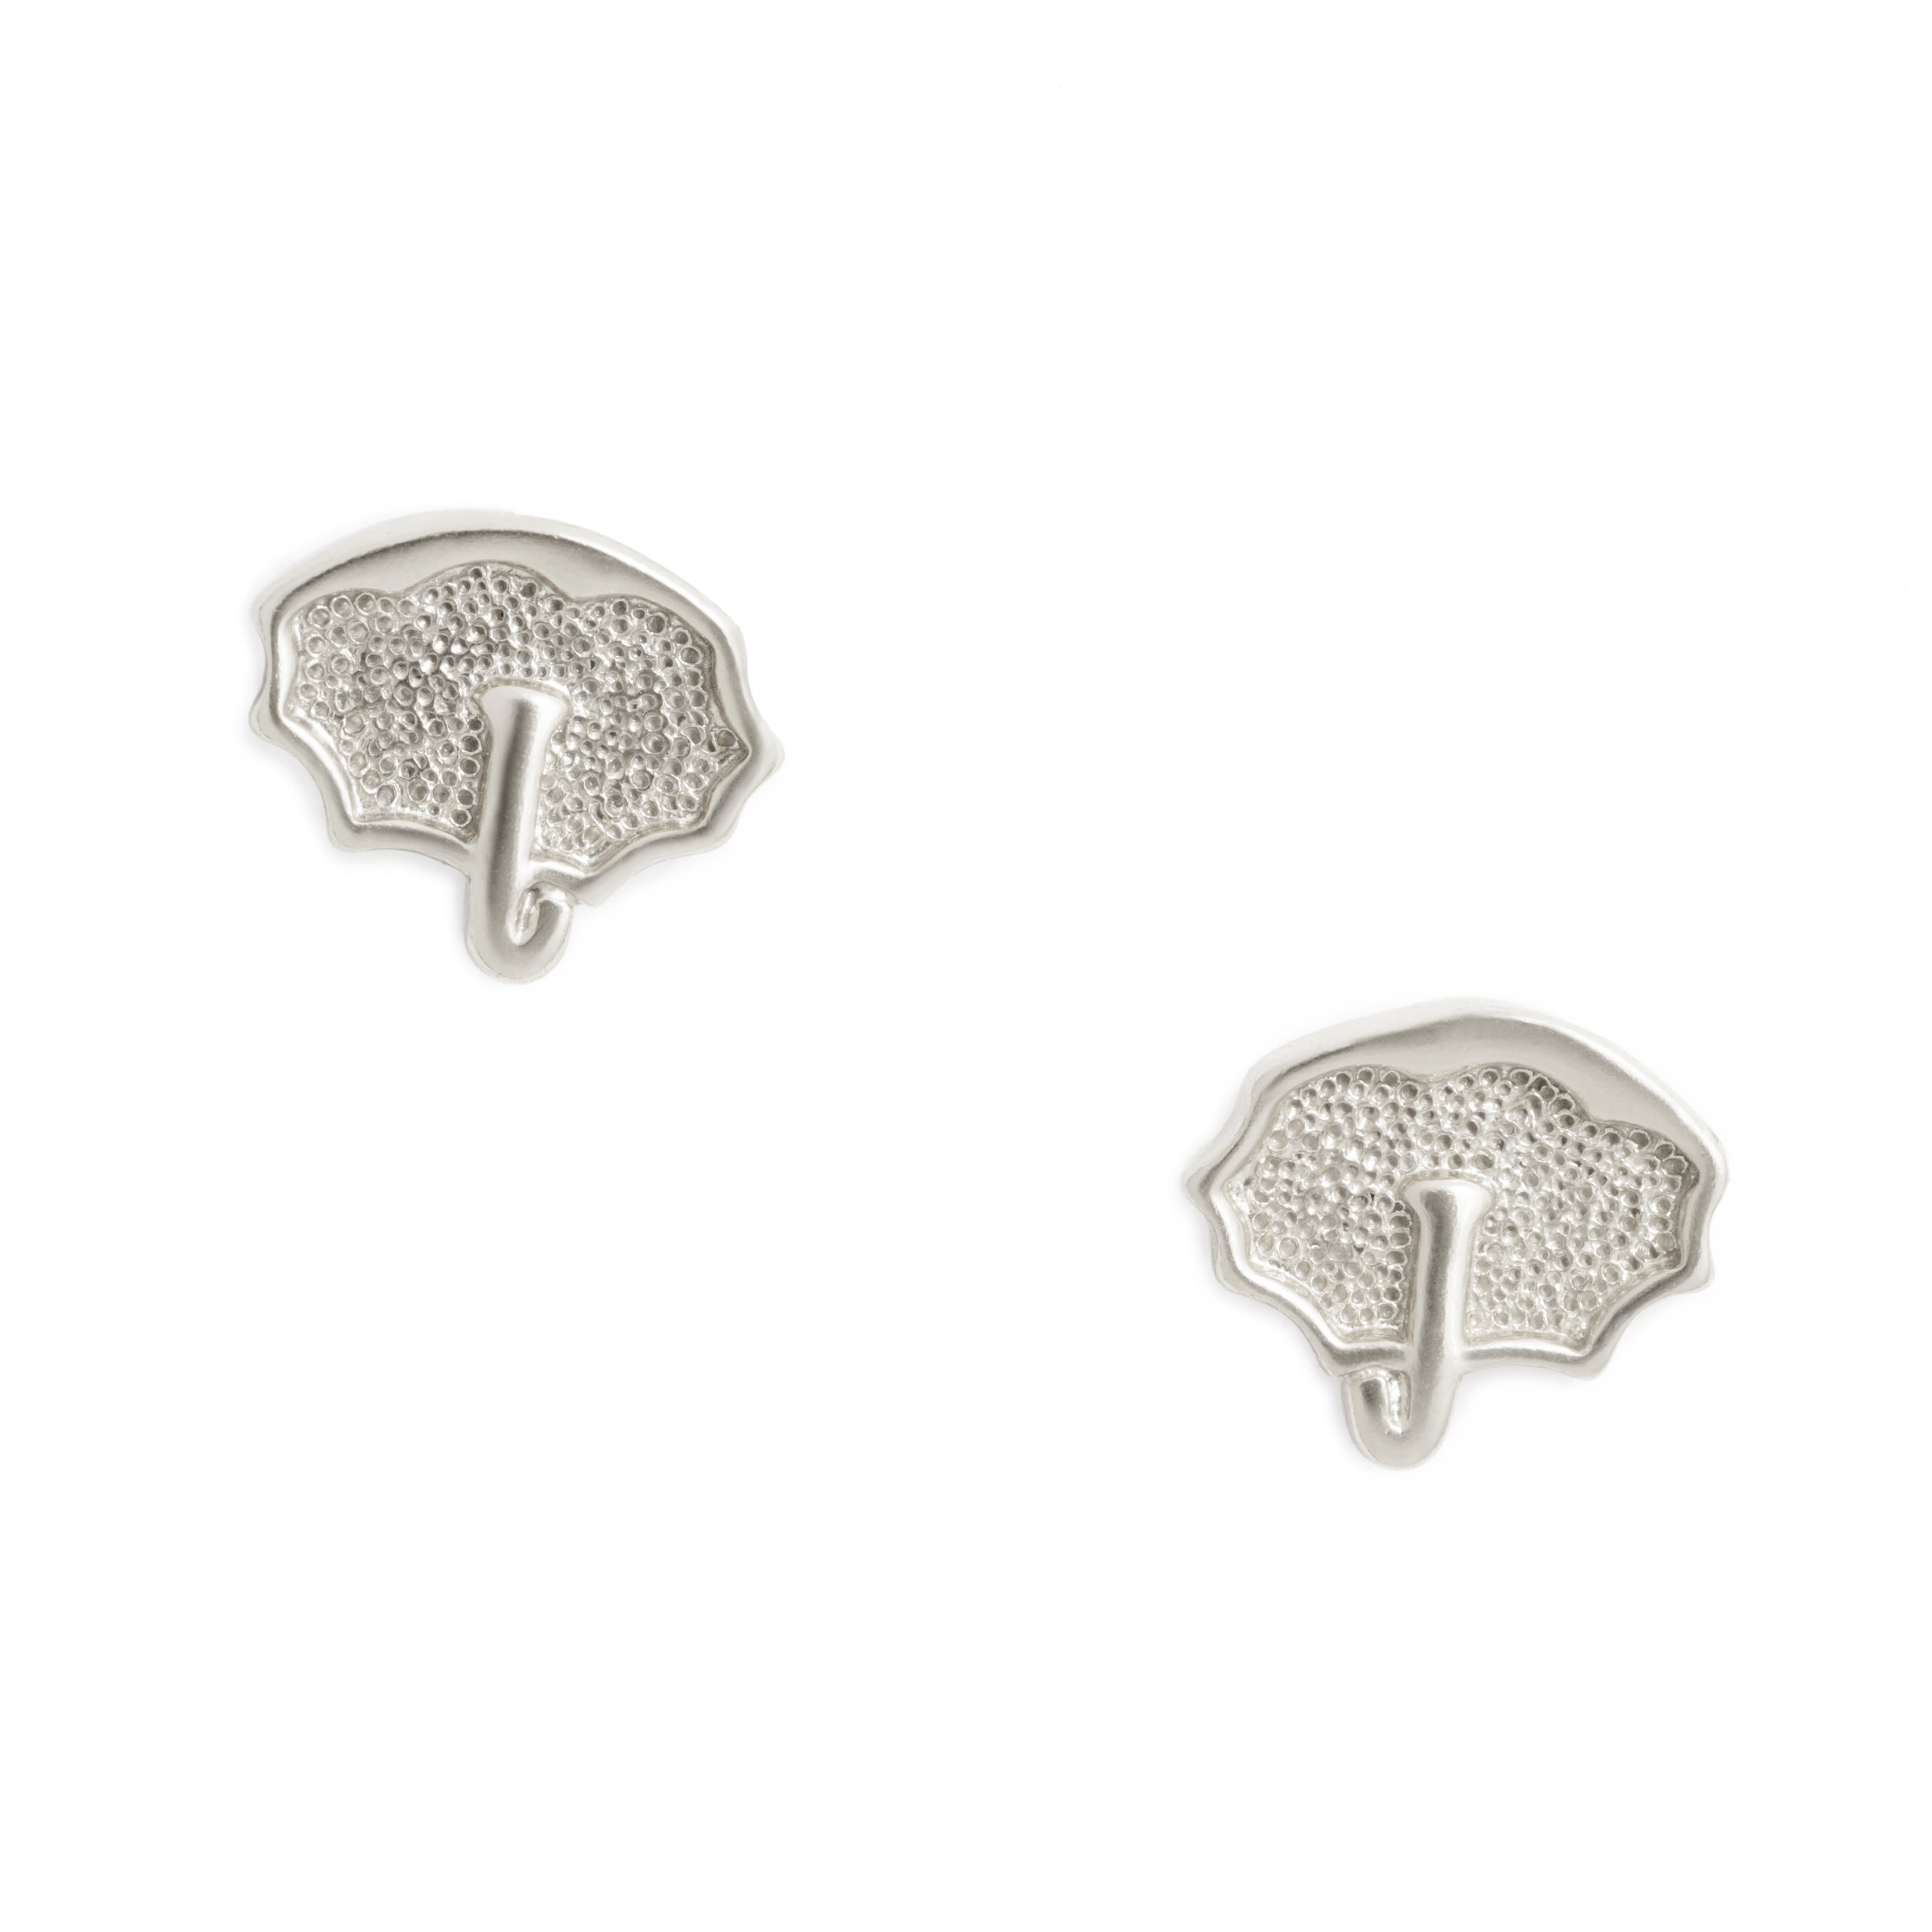 Umbrella Earrings, Sterling Silver